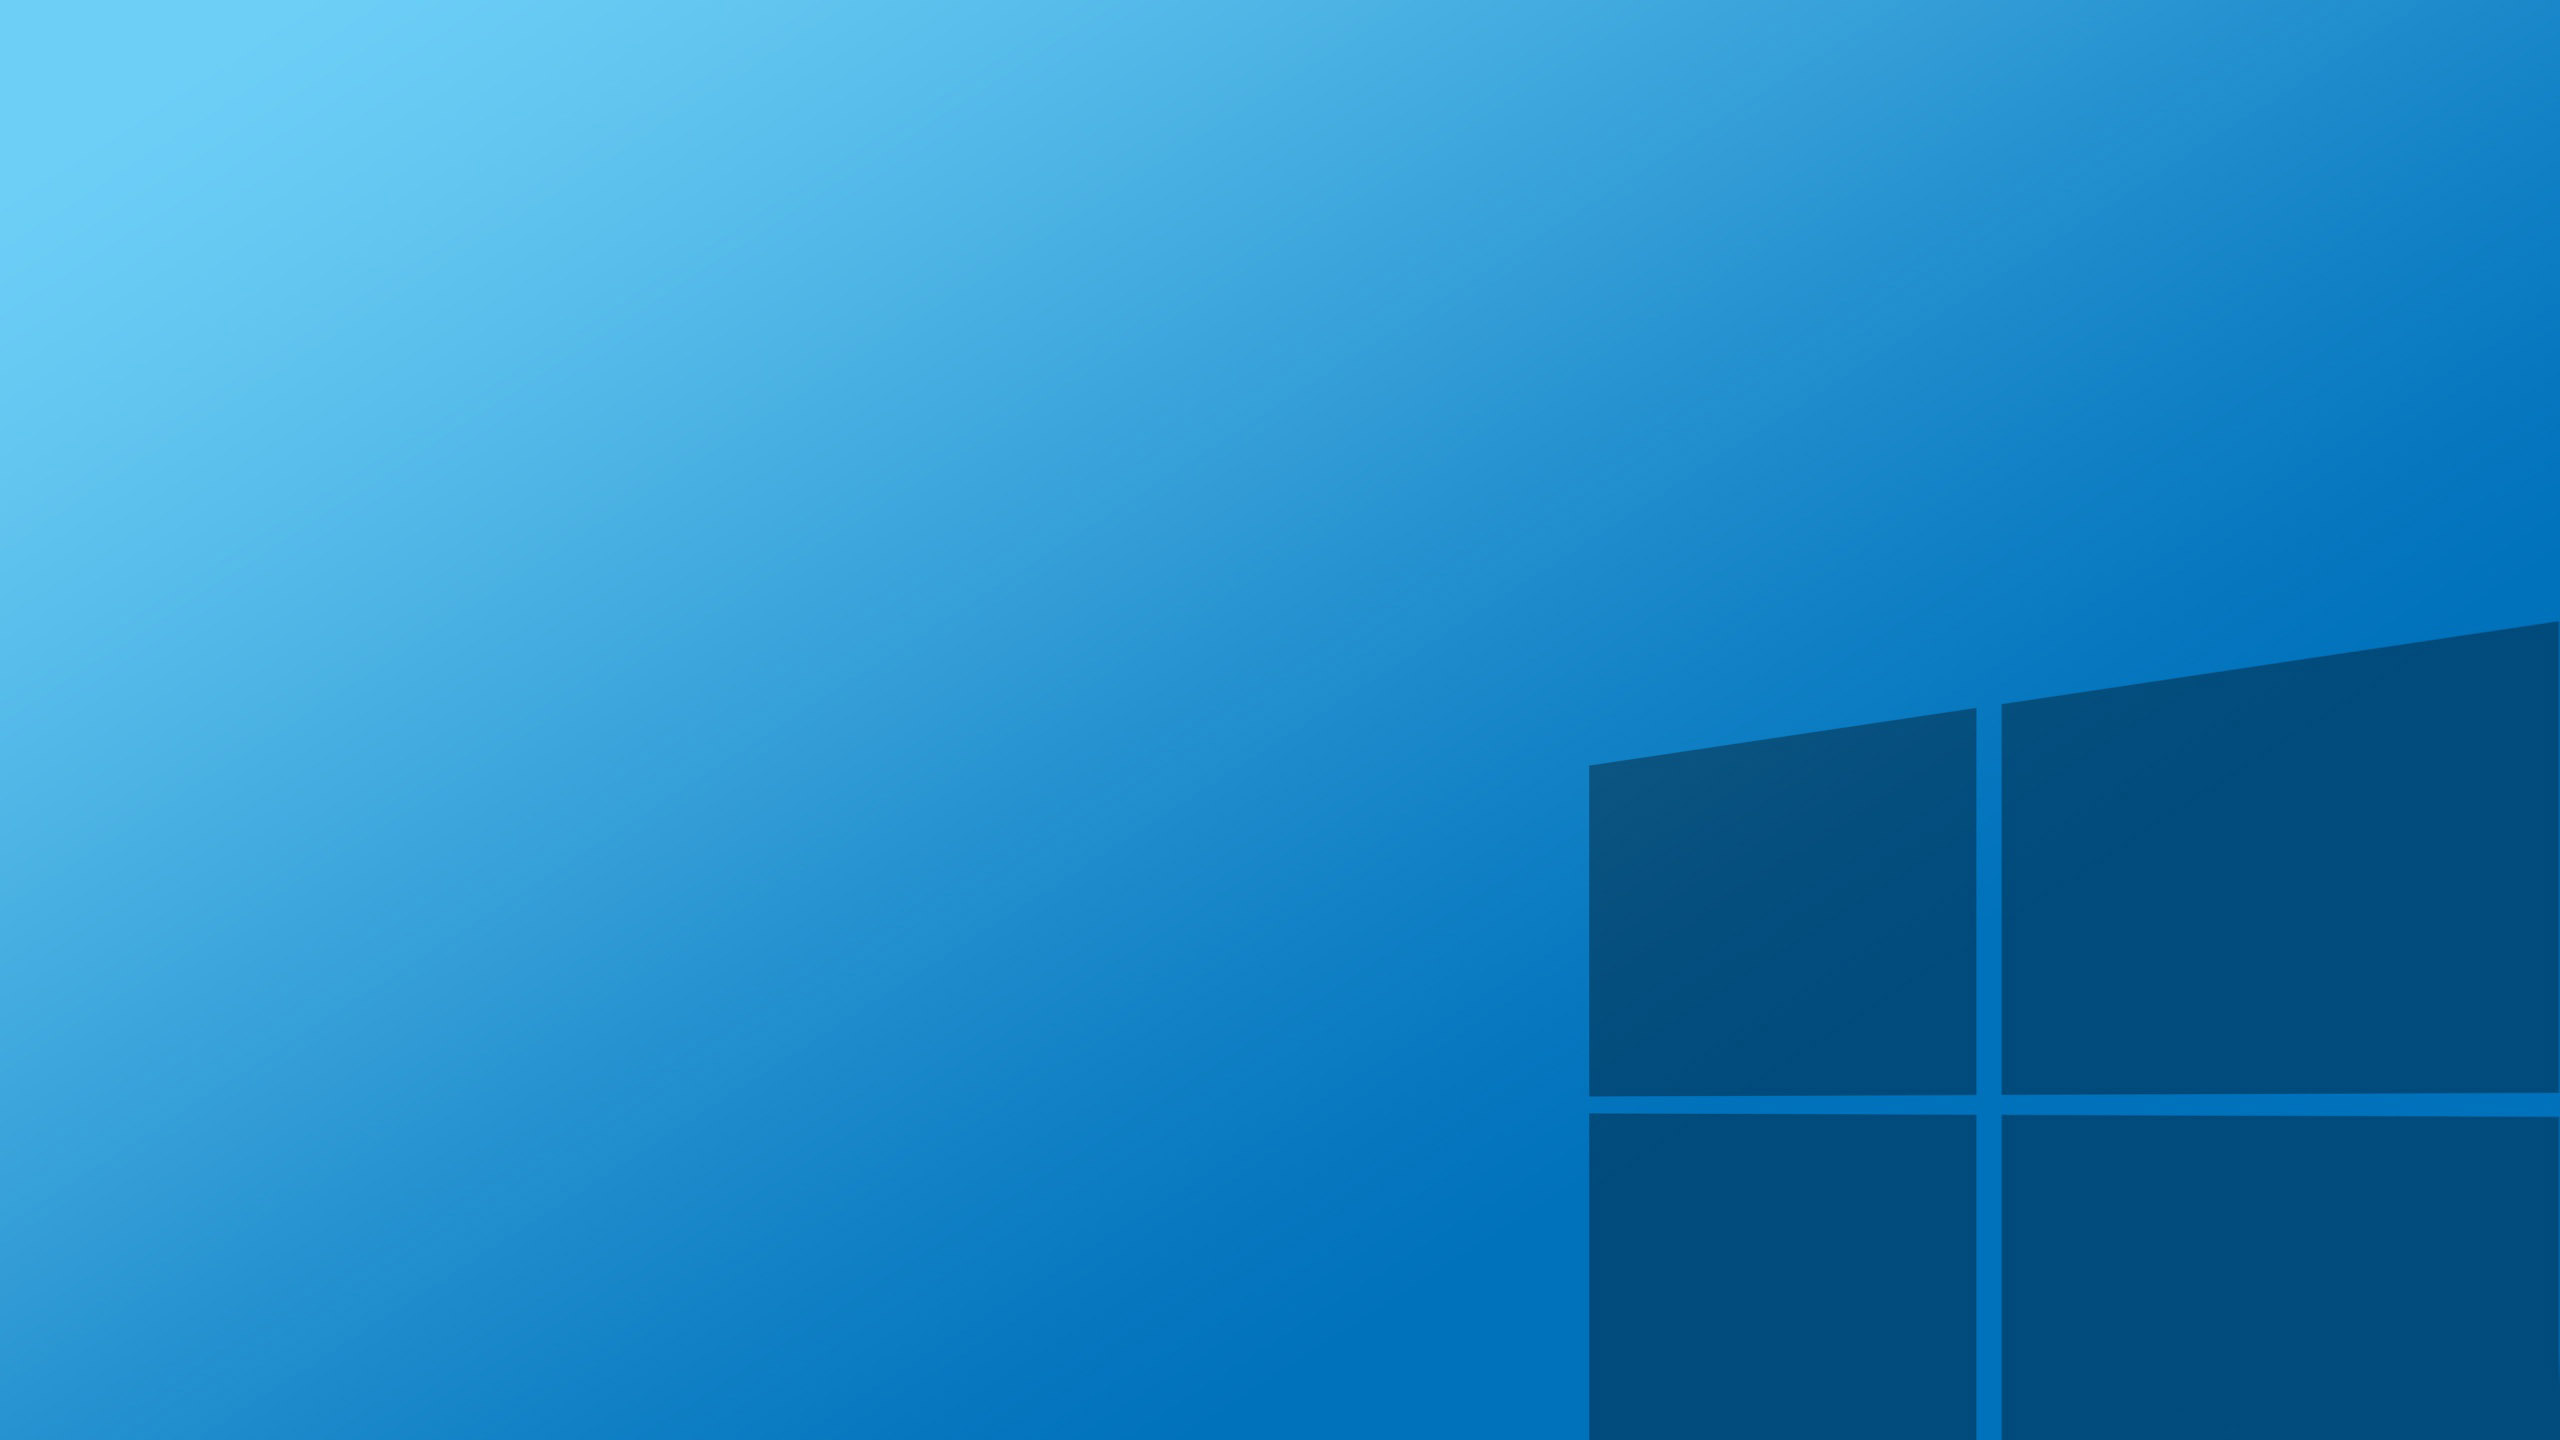 simple_windows_10_wallpapers_hd_dekstop_16_widescreen_backgrouds_